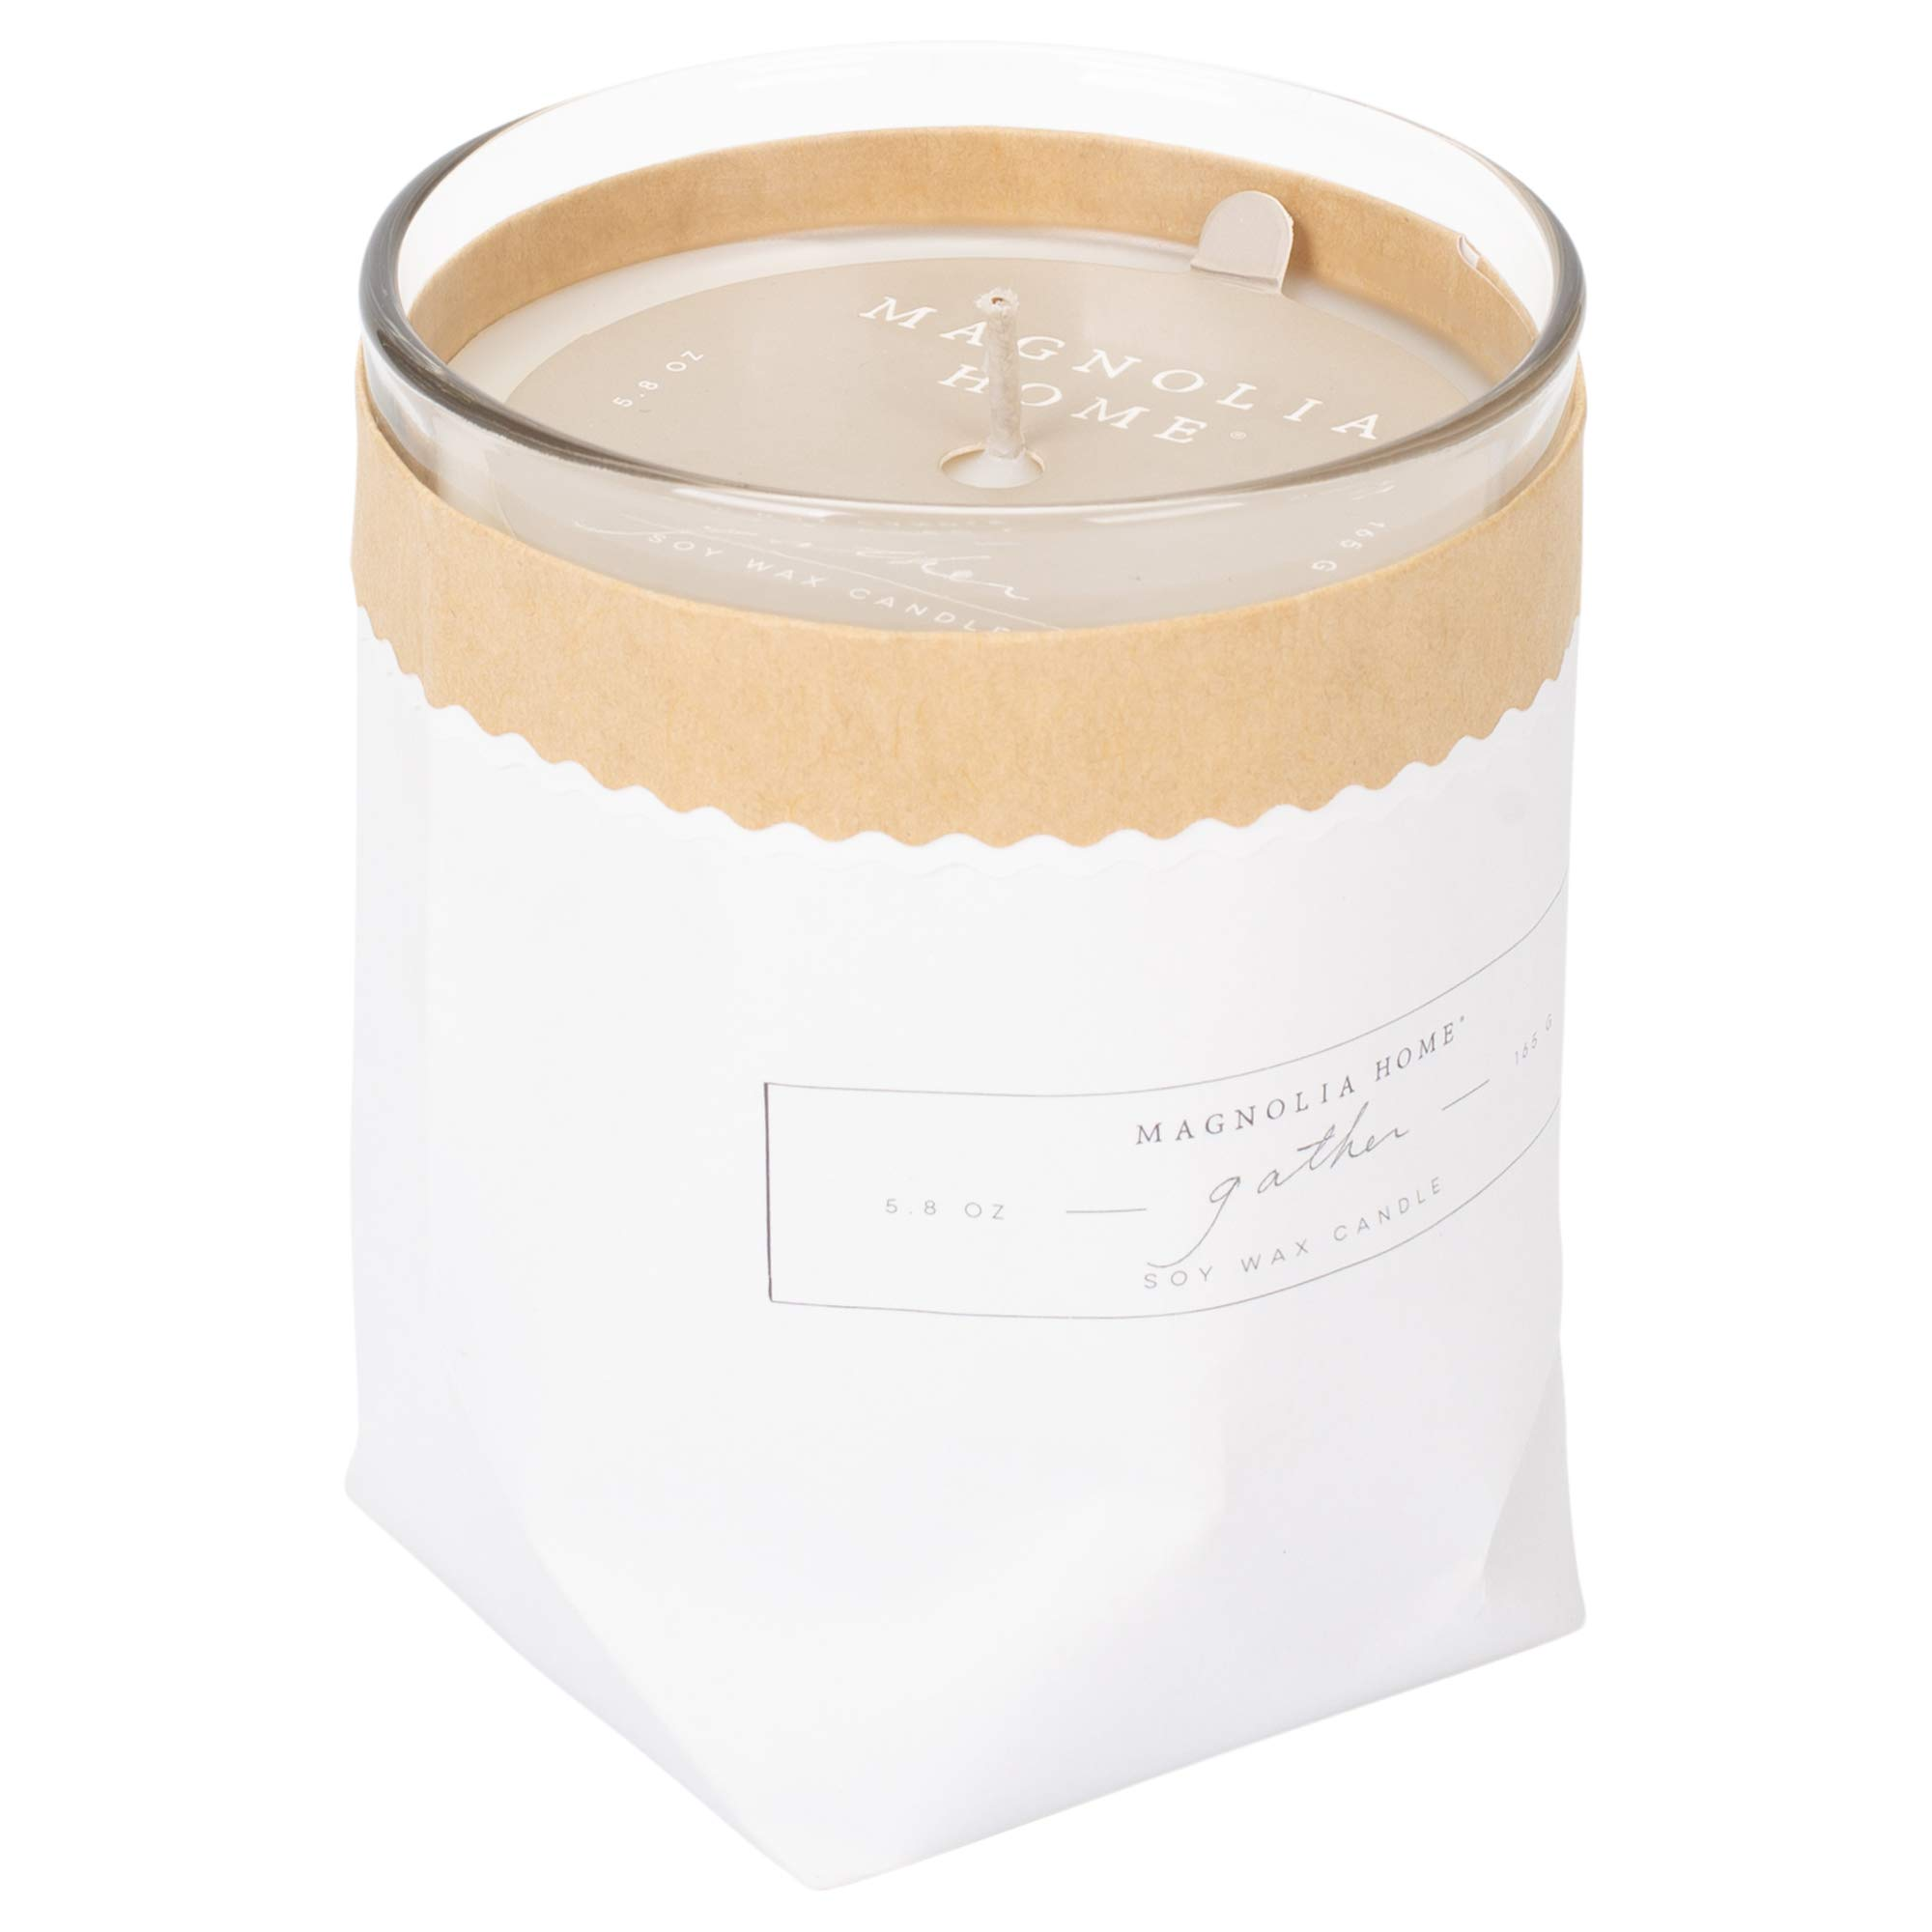 Gather Scented 5.8 ounce Soy Wax Kraft-Textured Candle by Joanna Gaines - Illume